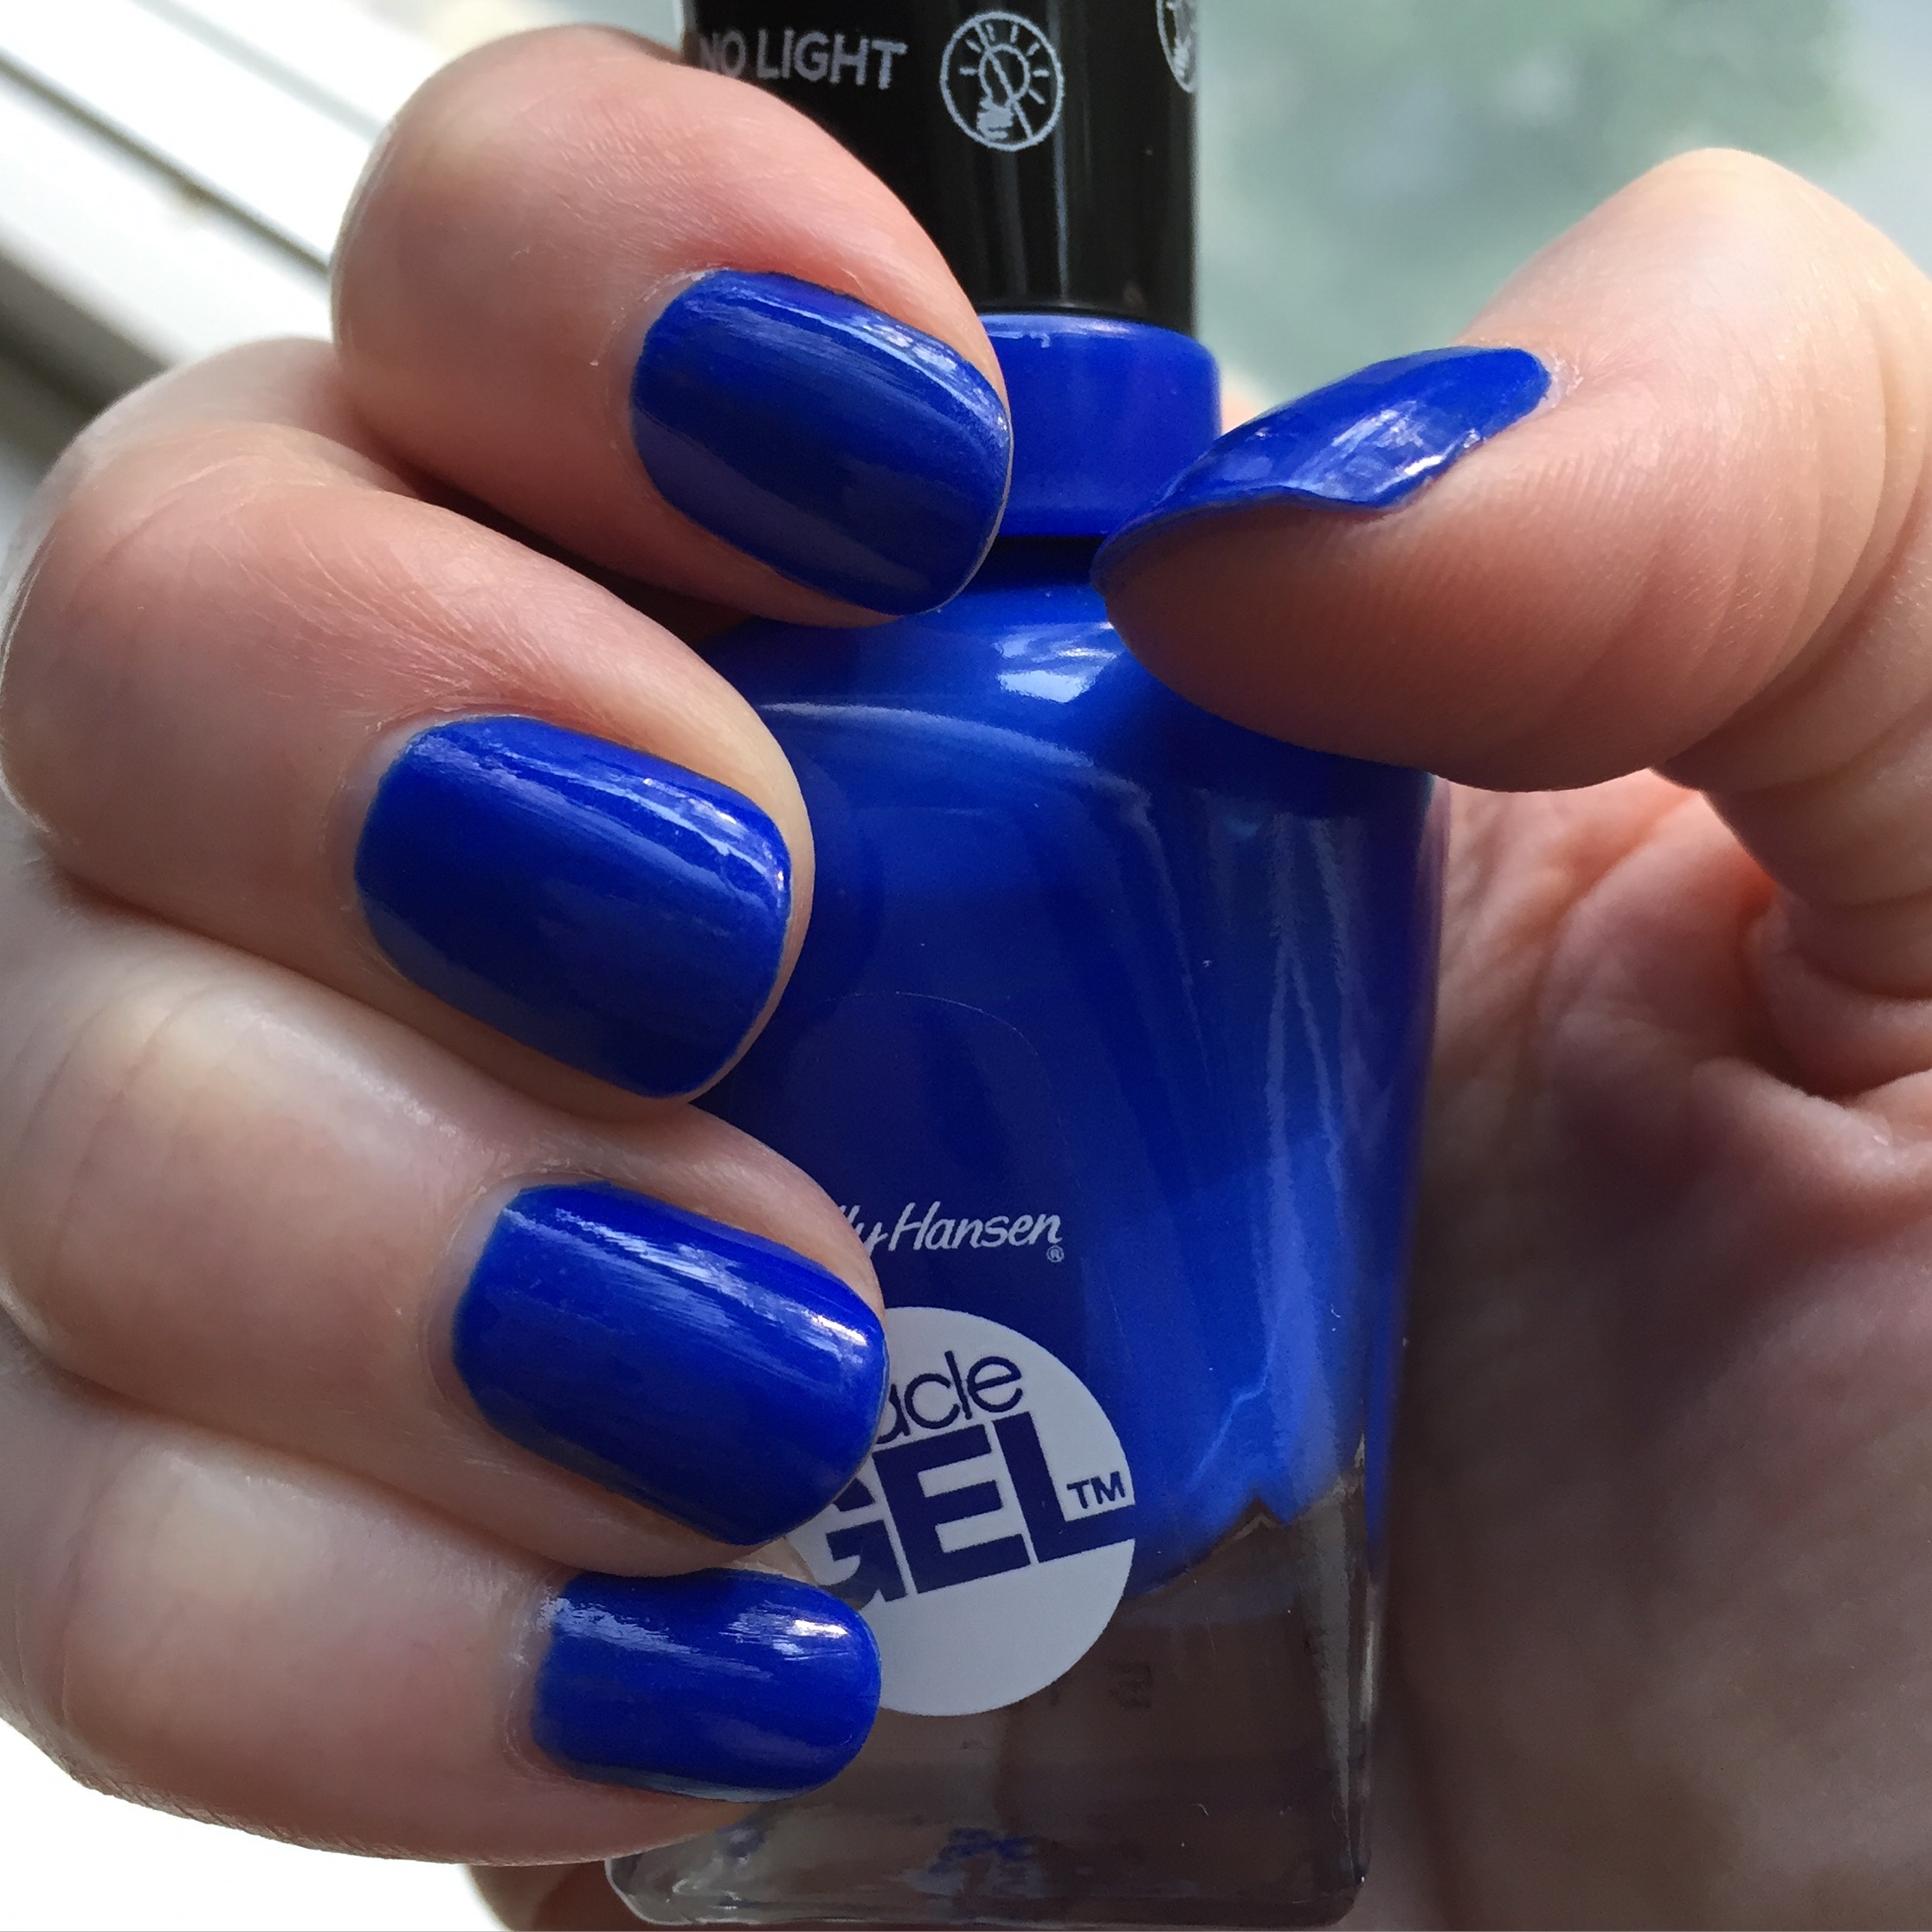 In re Sally Hansen Miracle Gel Nail Polish | Risa\'s Pieces